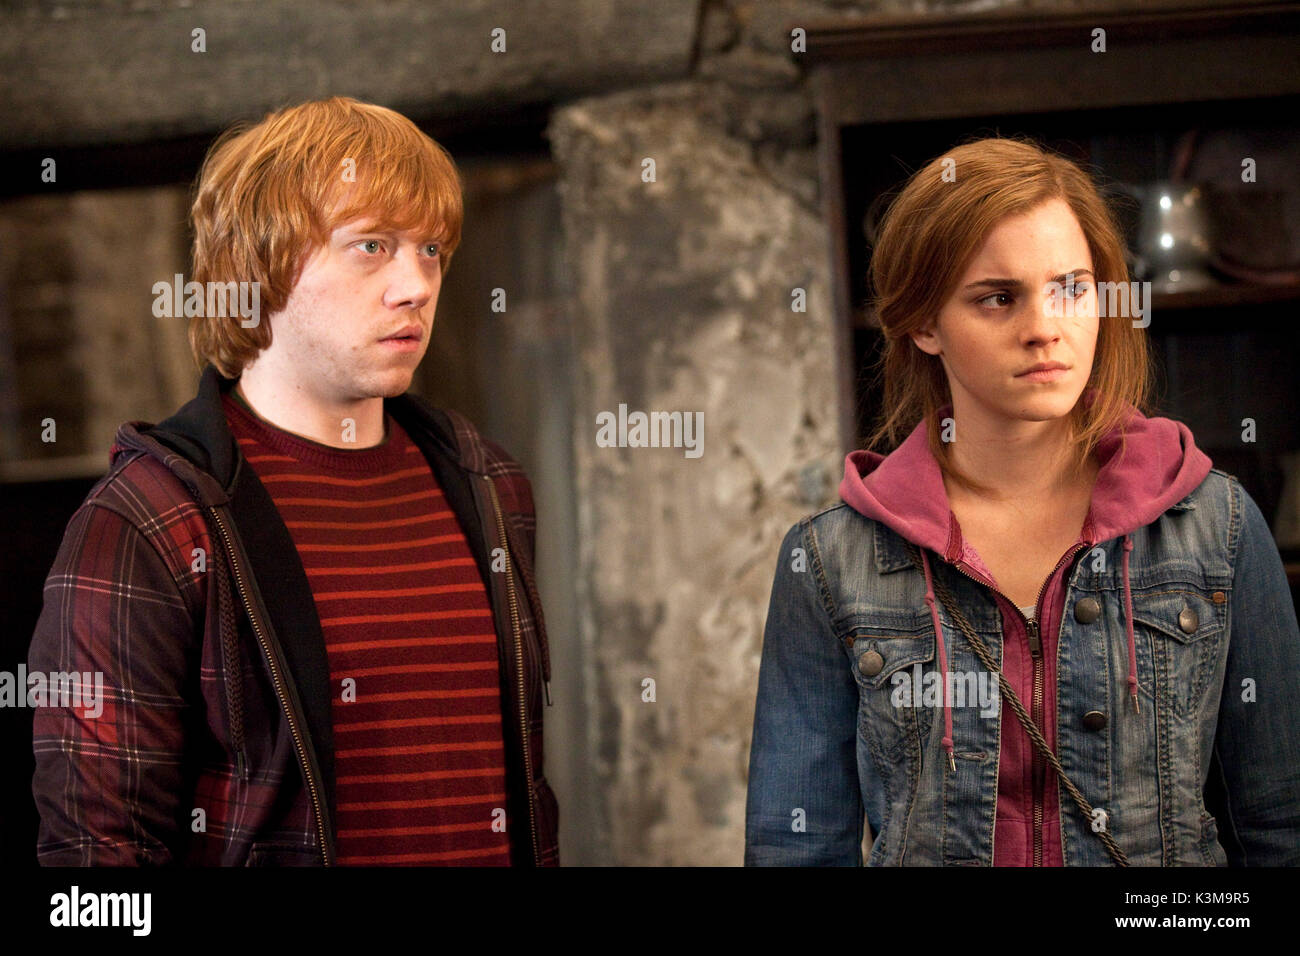 HARRY POTTER AND THE DEATHLY HALLOWS : PART 2 RUPERT GRINT as Ron Weasley, EMMA WATSON as Hermionie Granger HARRY POTTER AND THE DEATHLY HALLOWS : PART 2 [BR / US 2011] [L-R] RUPERT GRINT as Ron Weasley, EMMA WATSON as Hermionie Granger      Date: 2011 - Stock Image